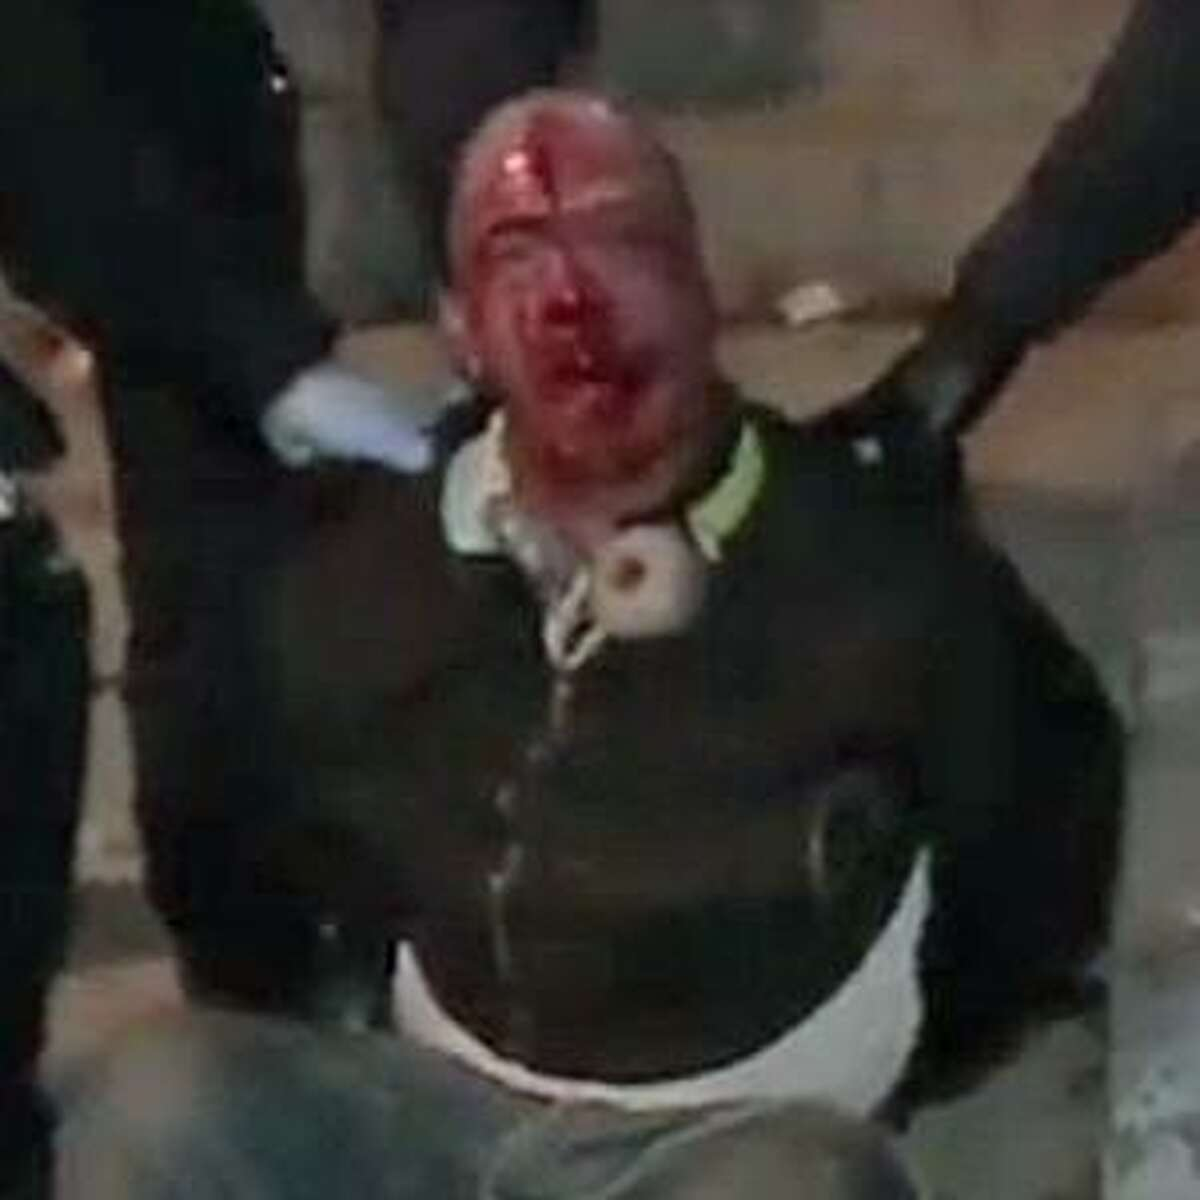 Police detain Ernesto Castro, 37, pictured in this cropped screenshot with blood on his face, who was later charged with disorderly conduct and resisting arrest. Familiy members believe he was mistreated.Bridgeport, CT, Nov. 18, 2016